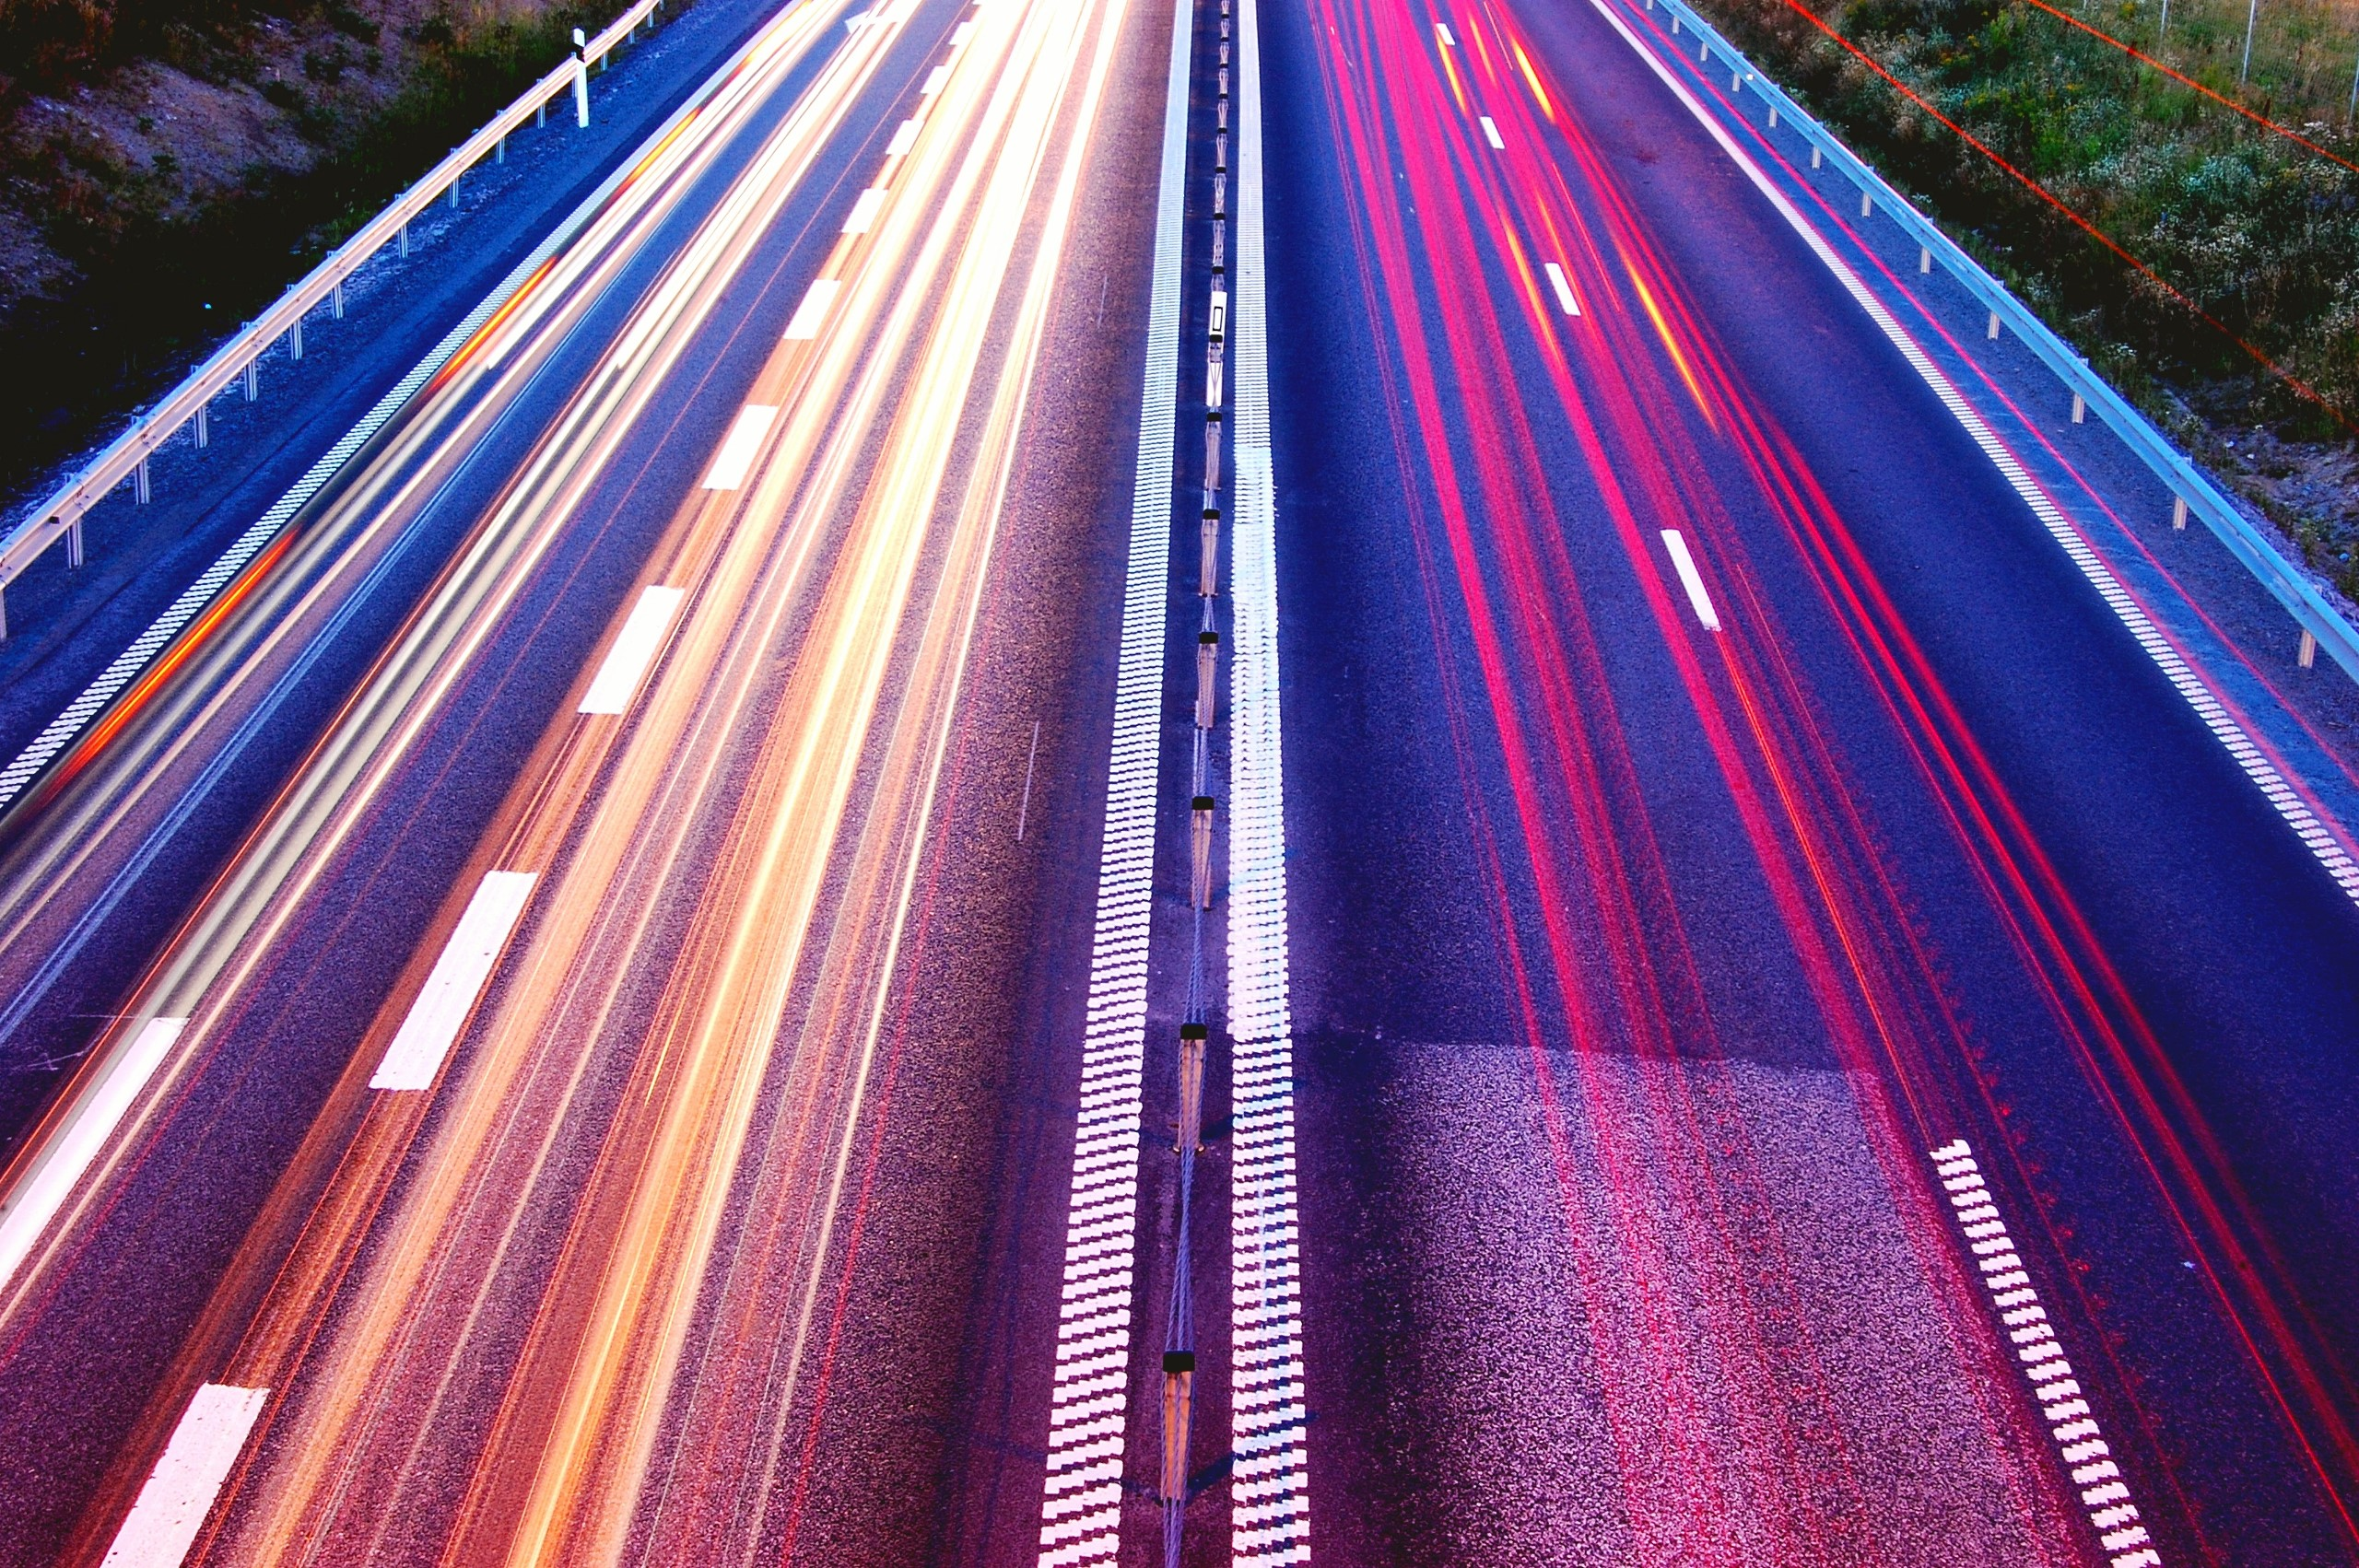 ITS, Smart road, ferrovie e logistica: i fabbisogni infrastrutturali per connettere l'Italia